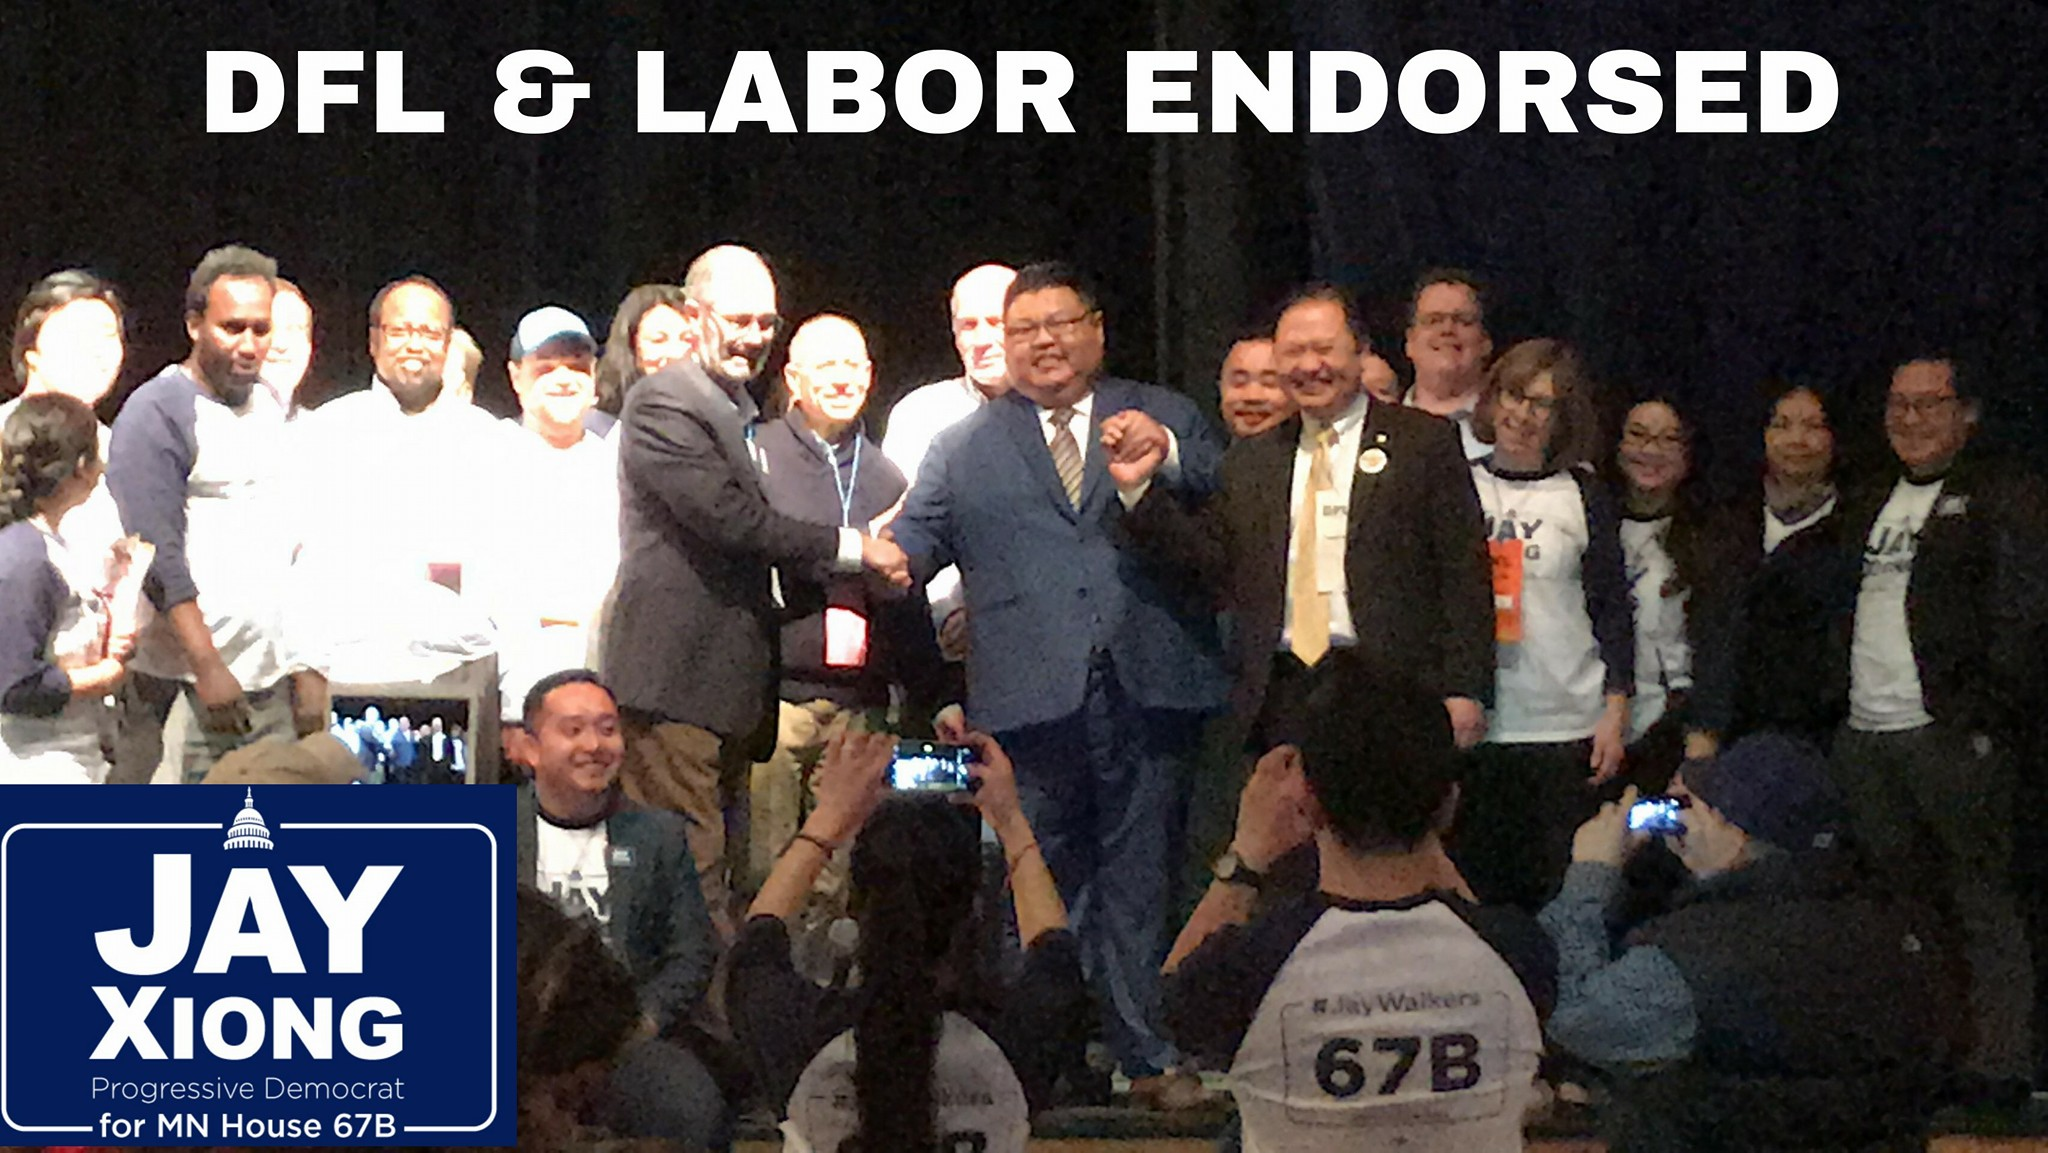 JAY XIONG FOR MN 67B GETS DFL & LABOR ENDORSEMENT